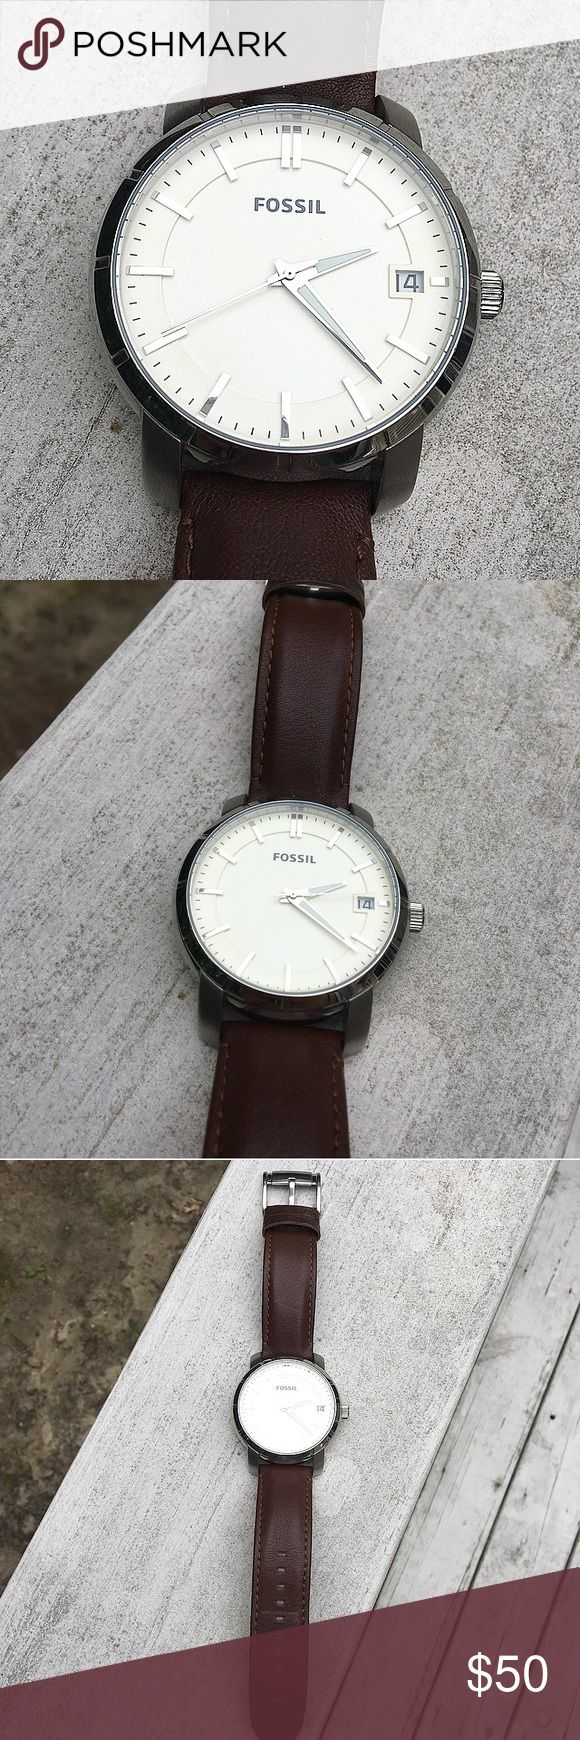 Brown Fossil Automatic Watch Men's Fossil watch with cream colored face and genuine brown leather band. Automatic mechanism - Watch ticks to your movement and doesn't need battery! Soft leather and stylish! Warn only a handful of times and is in excellent condition. Authentic. No trades! Fossil Accessories Watches